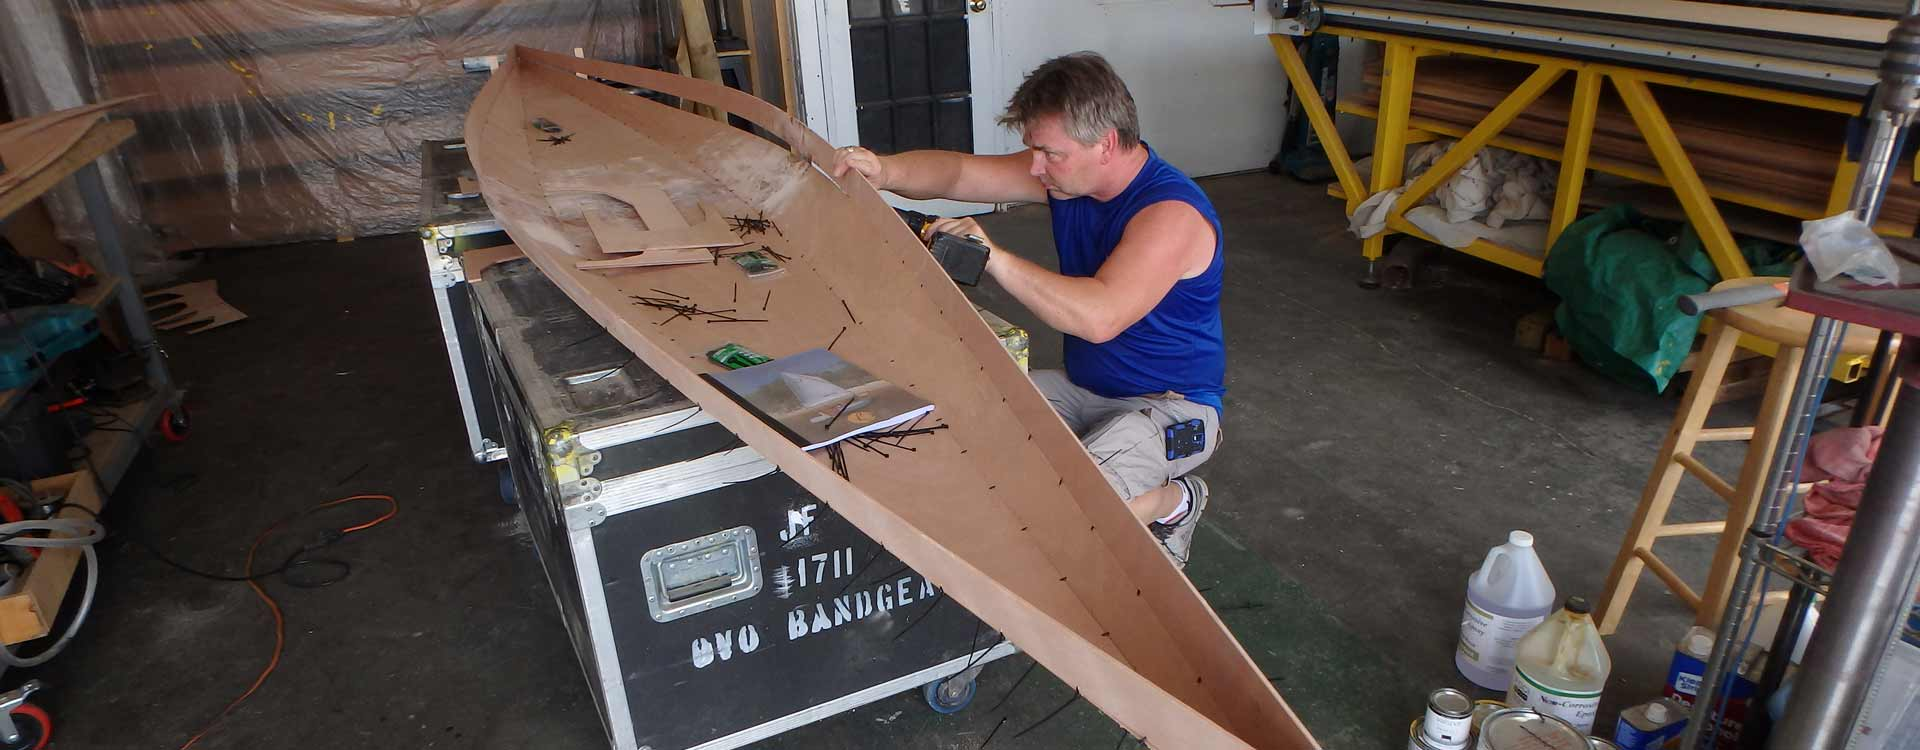 Boat building build alongs